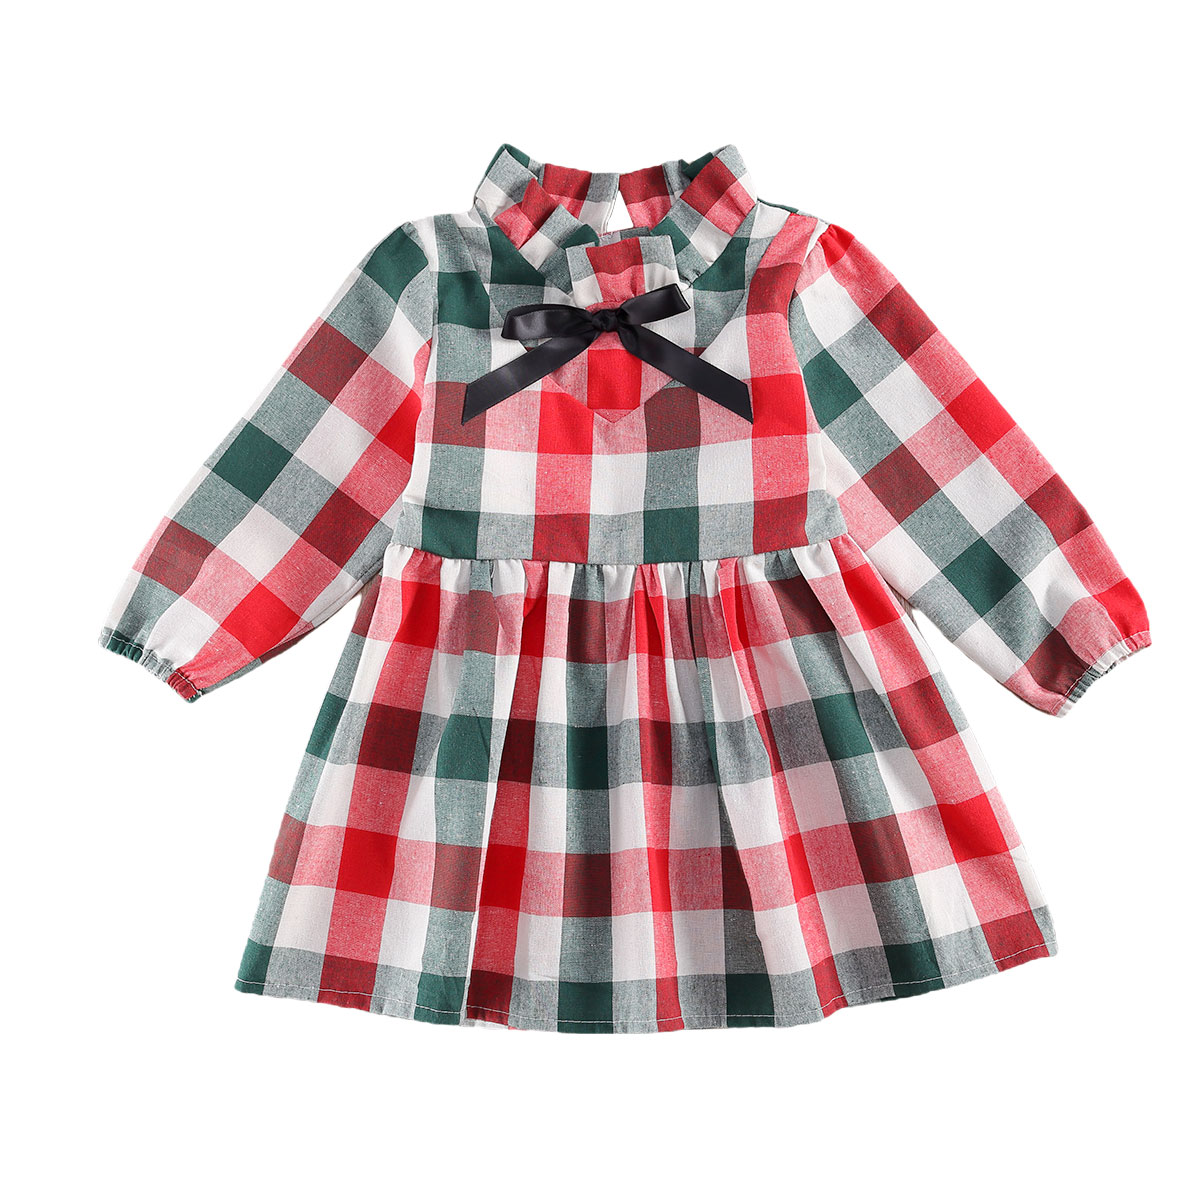 Biayxms - Infant Baby Girls Plaid Christmas Dress A Line Dresses with  Bowknot Girl Xmas Christmas Party Tunic Dress - Walmart.com